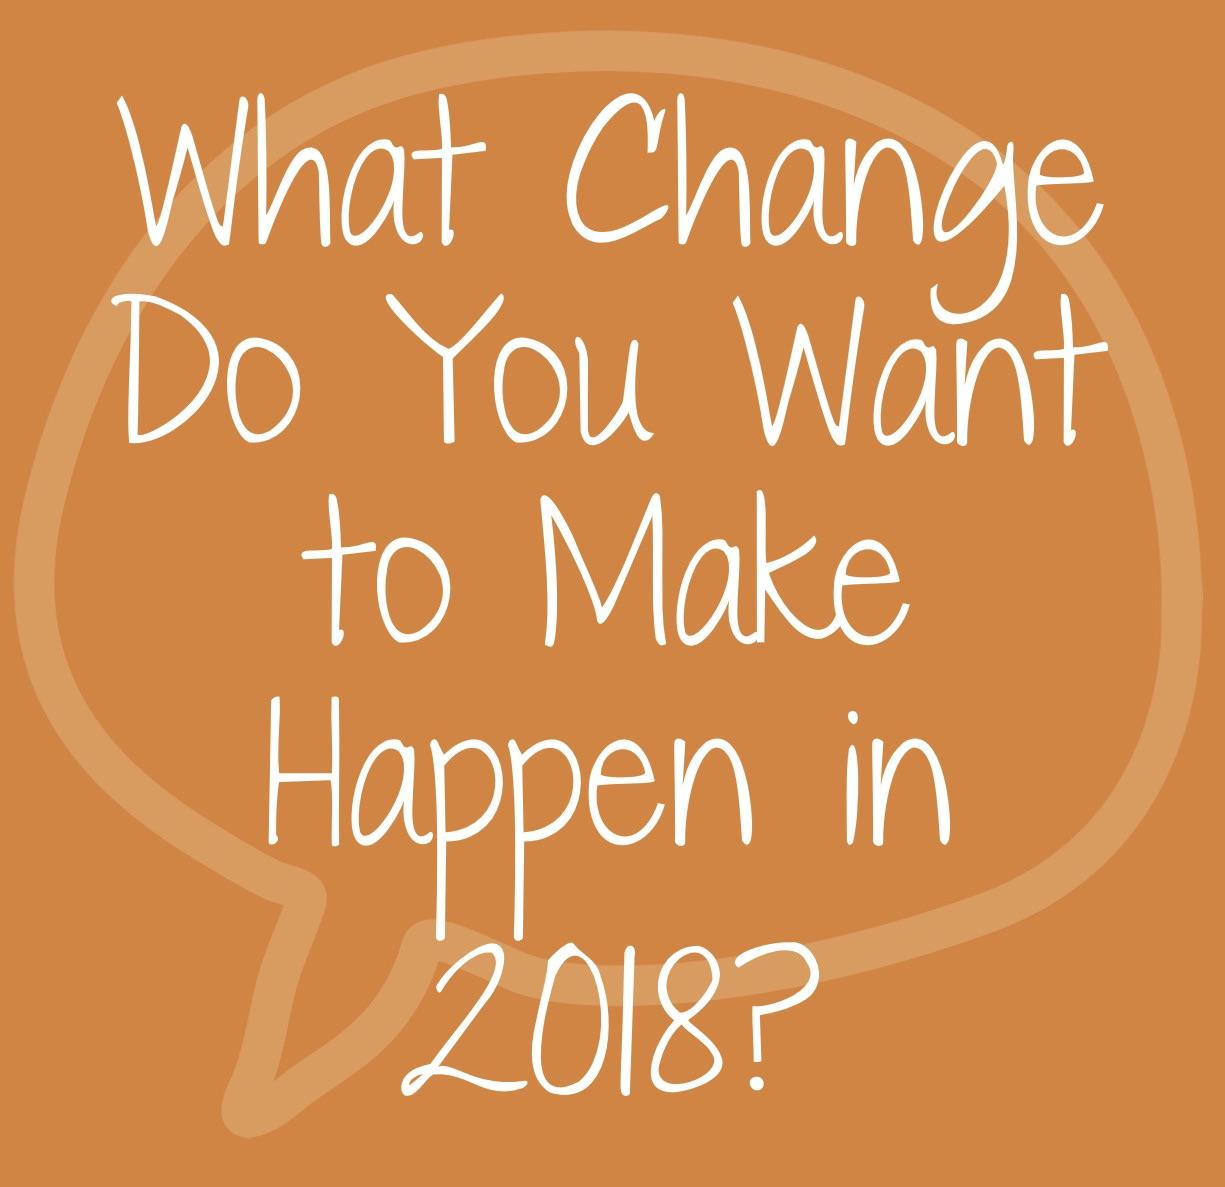 What change are you making in 2018?